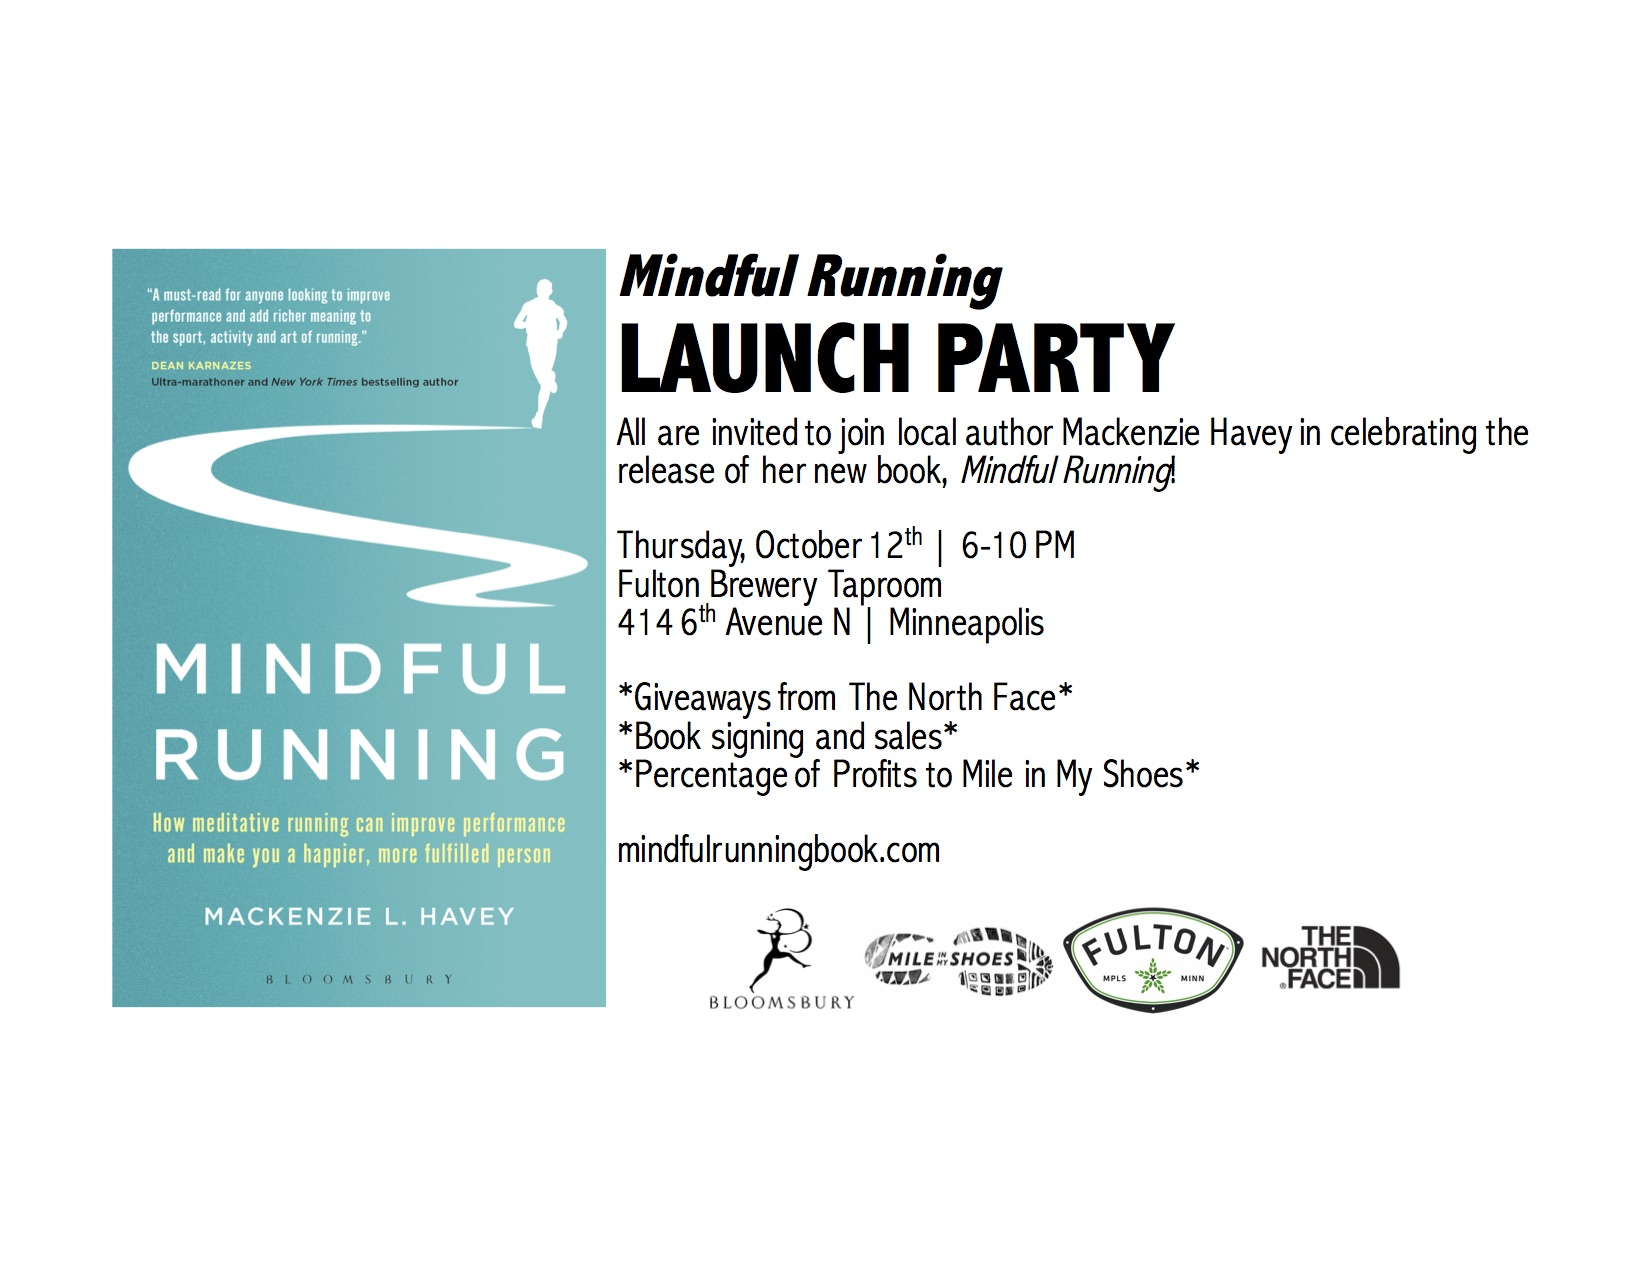 Mindful Running Launch Party Invite JPEG.jpg